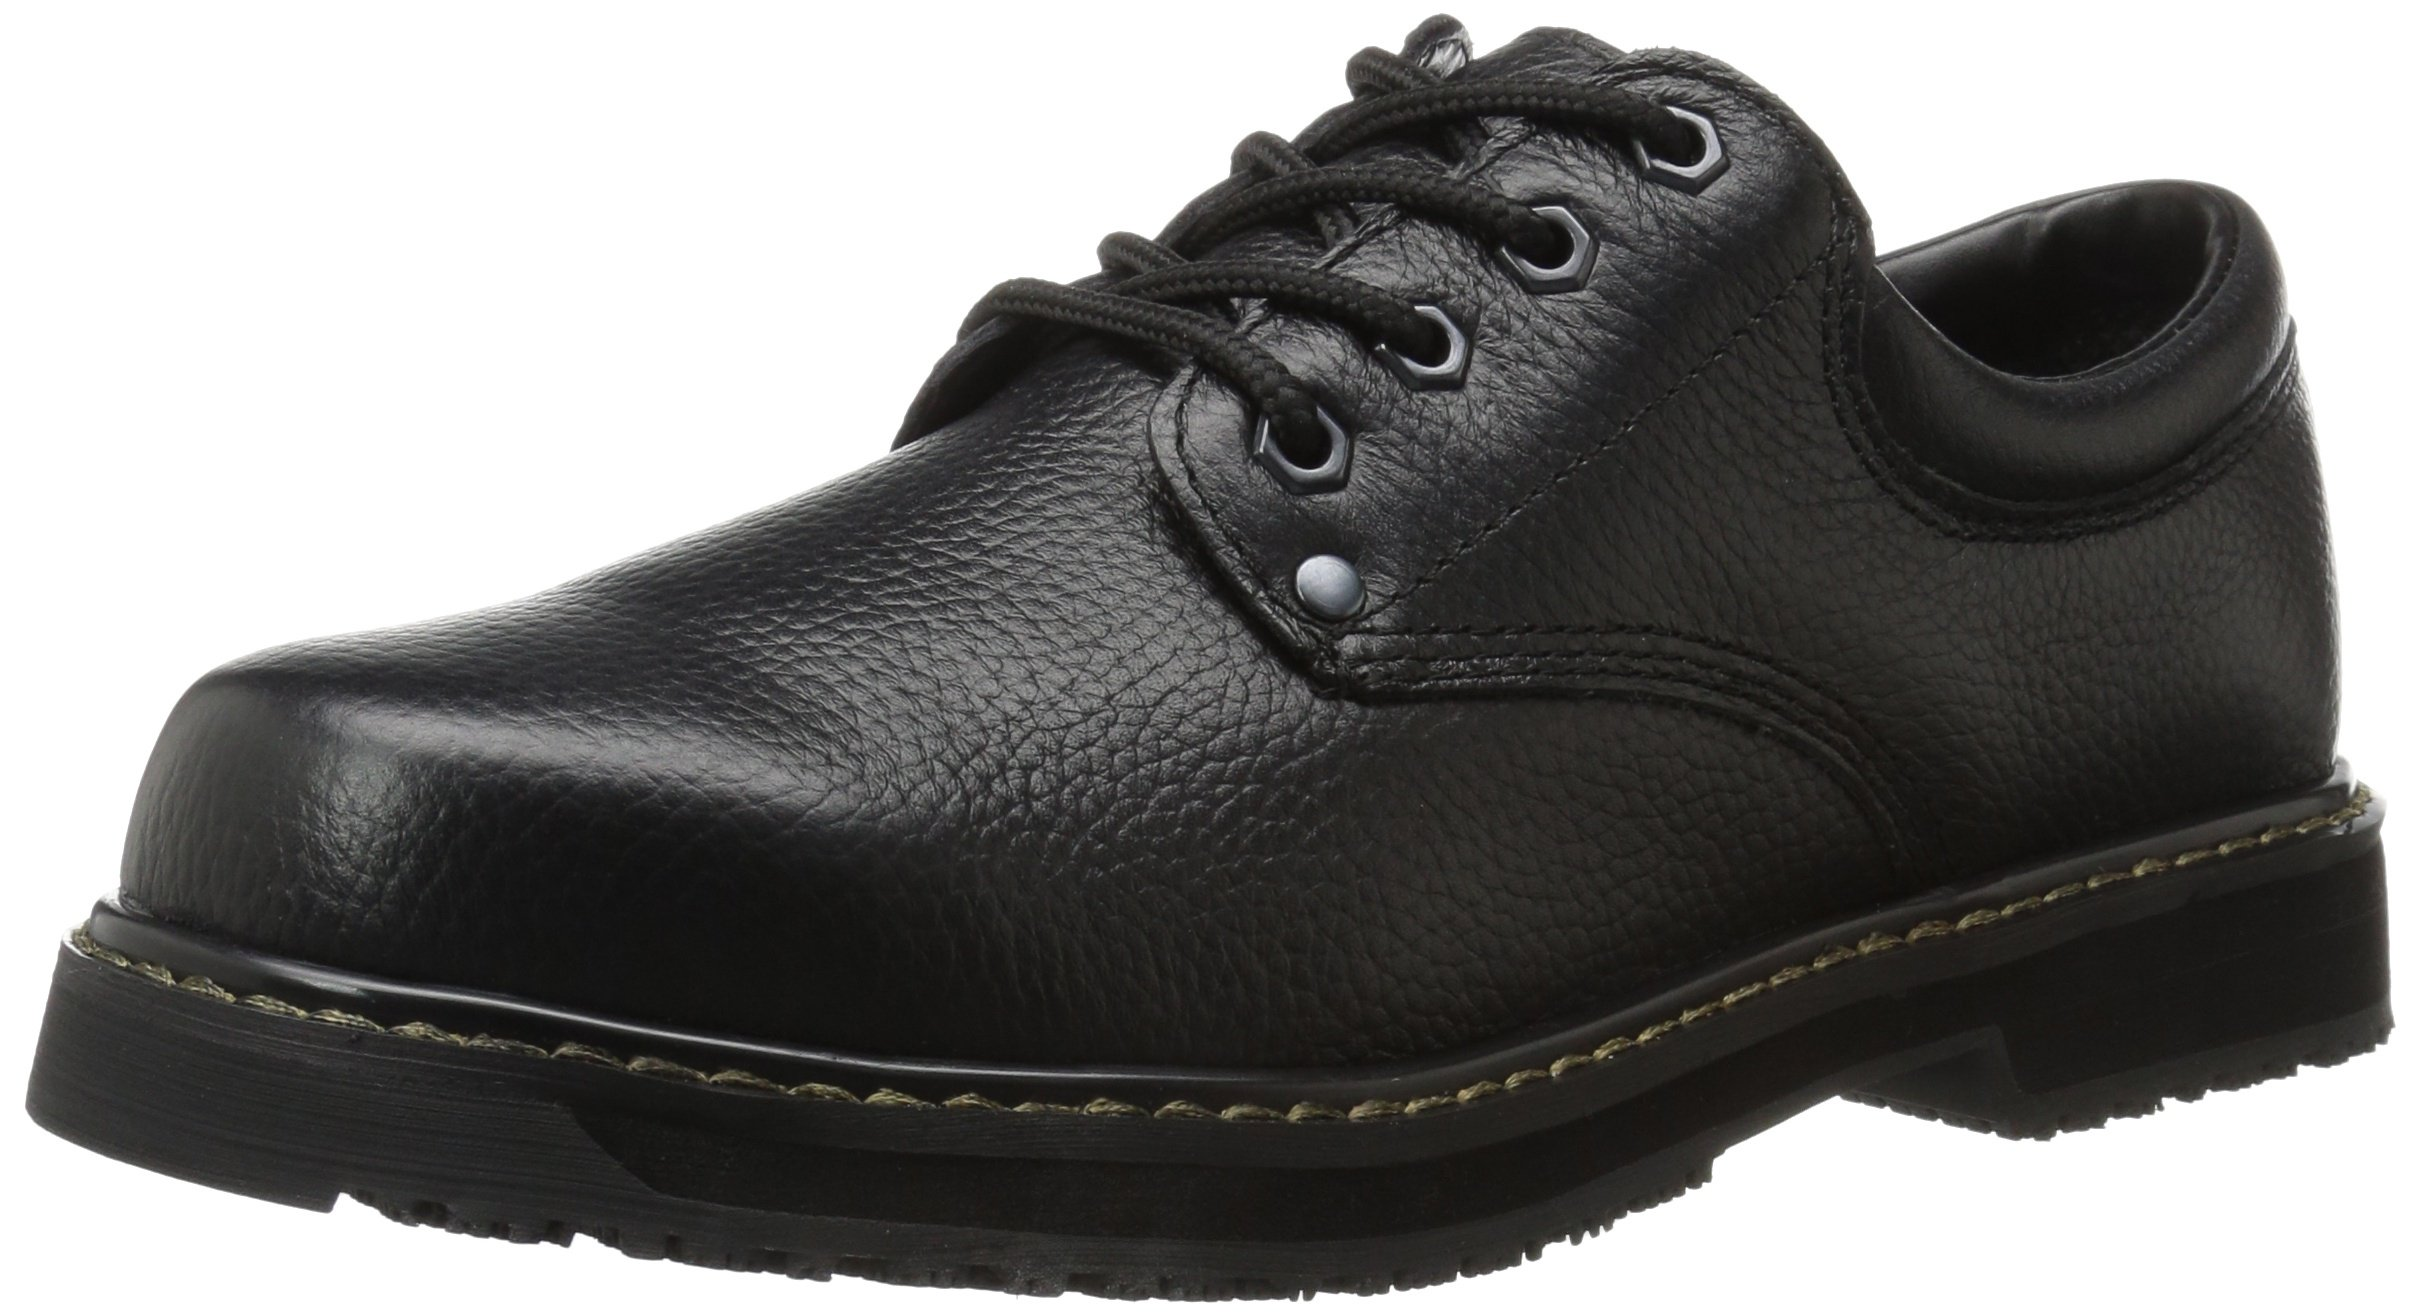 Dr. Scholl's Men's Harrington Work Shoe,Black,10.5 W US by Dr. Scholl's Shoes